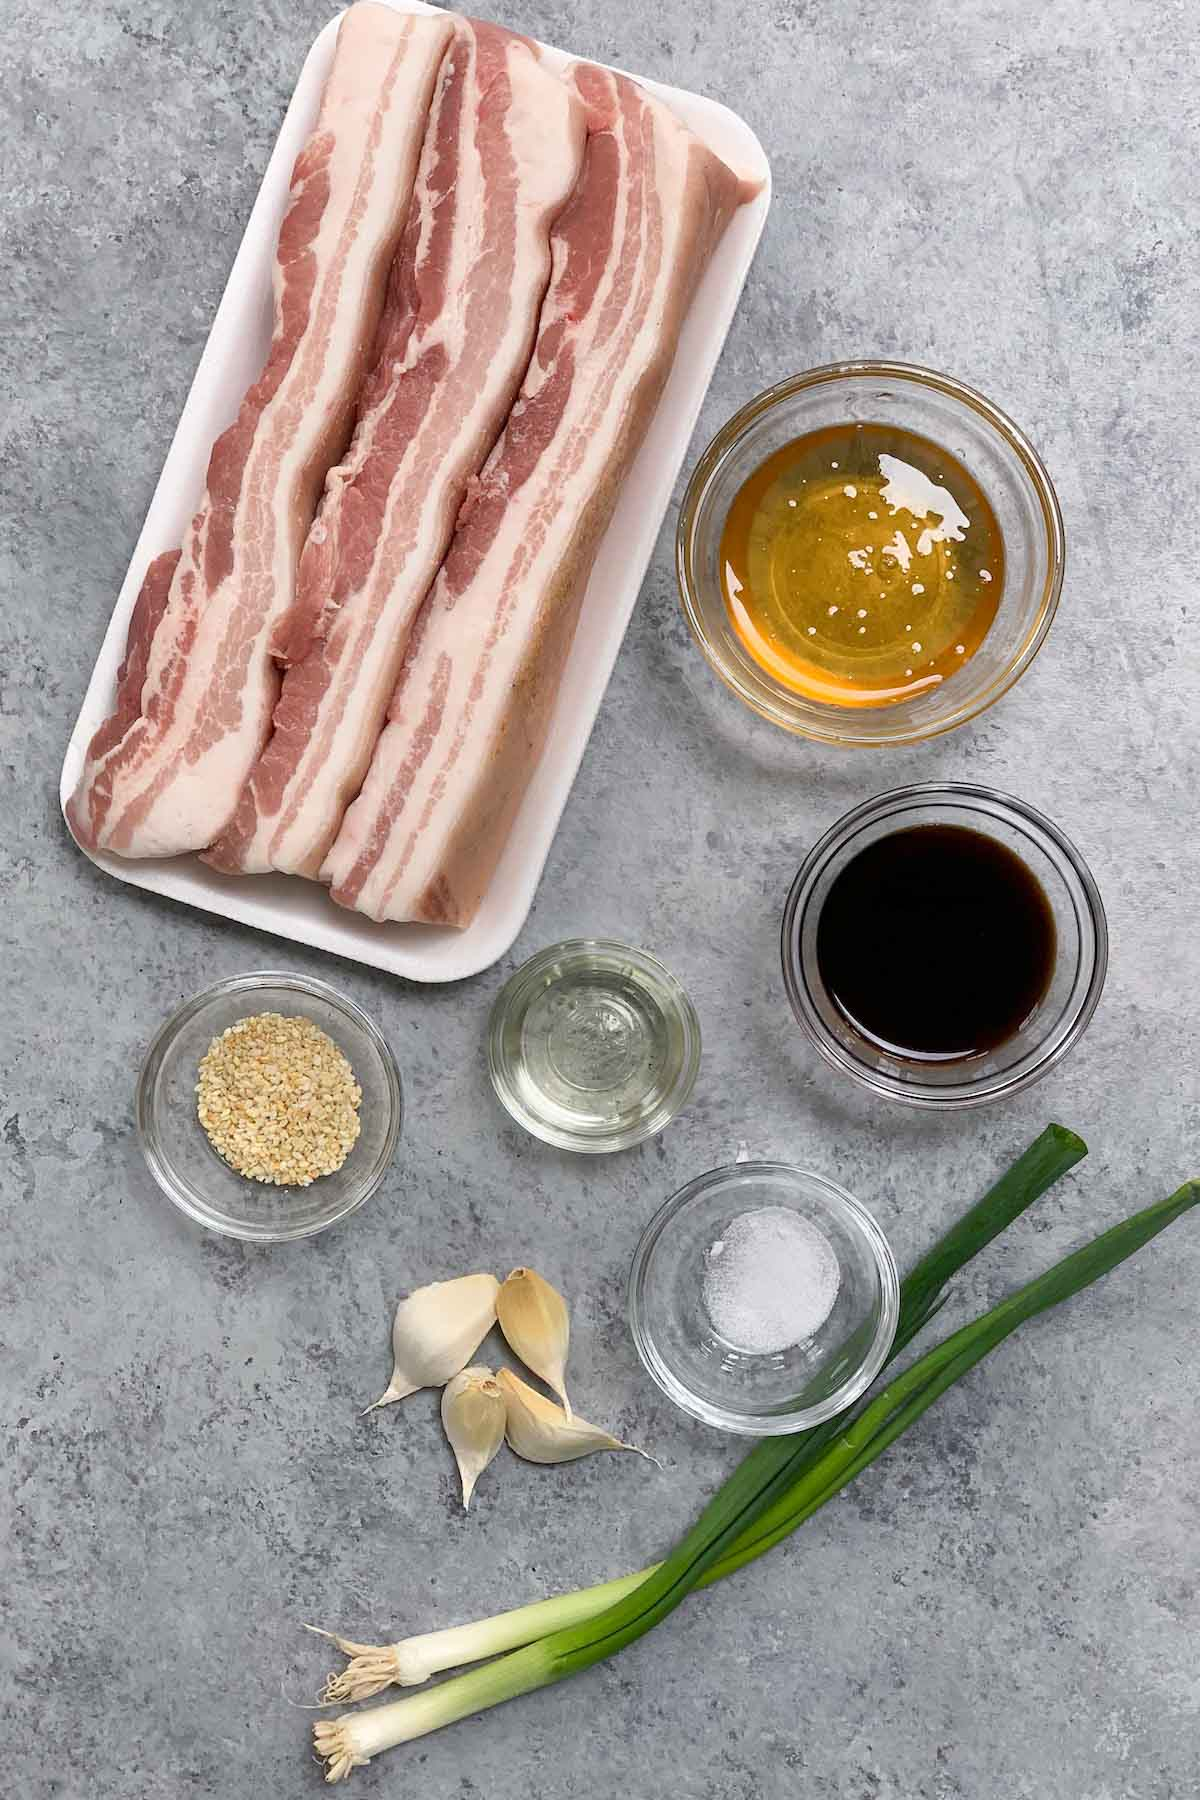 Sous Vide Pork Belly ingredients on the counter.